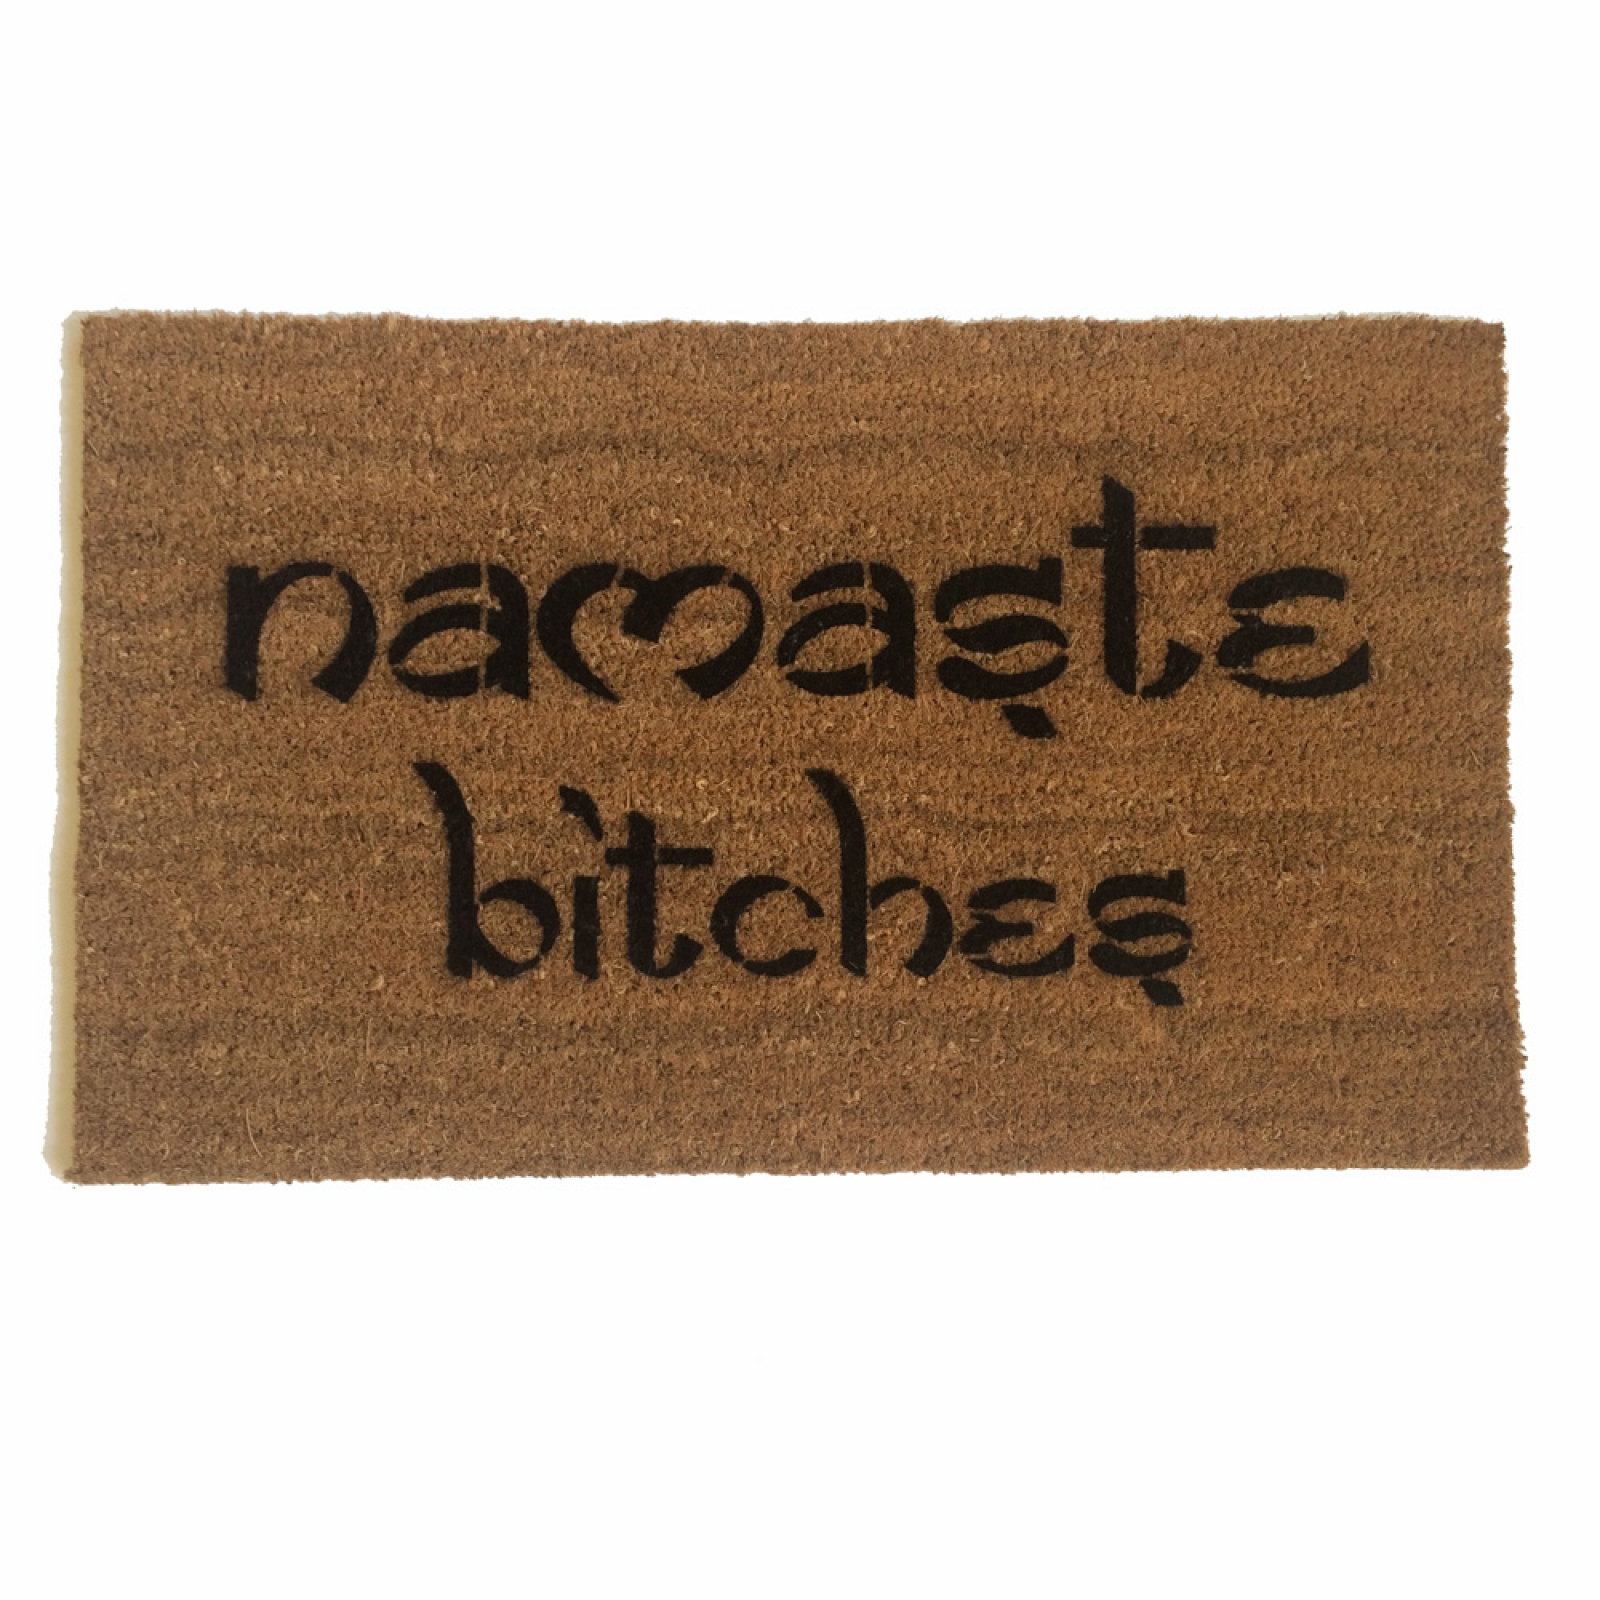 Namaste Bitches Doormat Damn Good Doormats